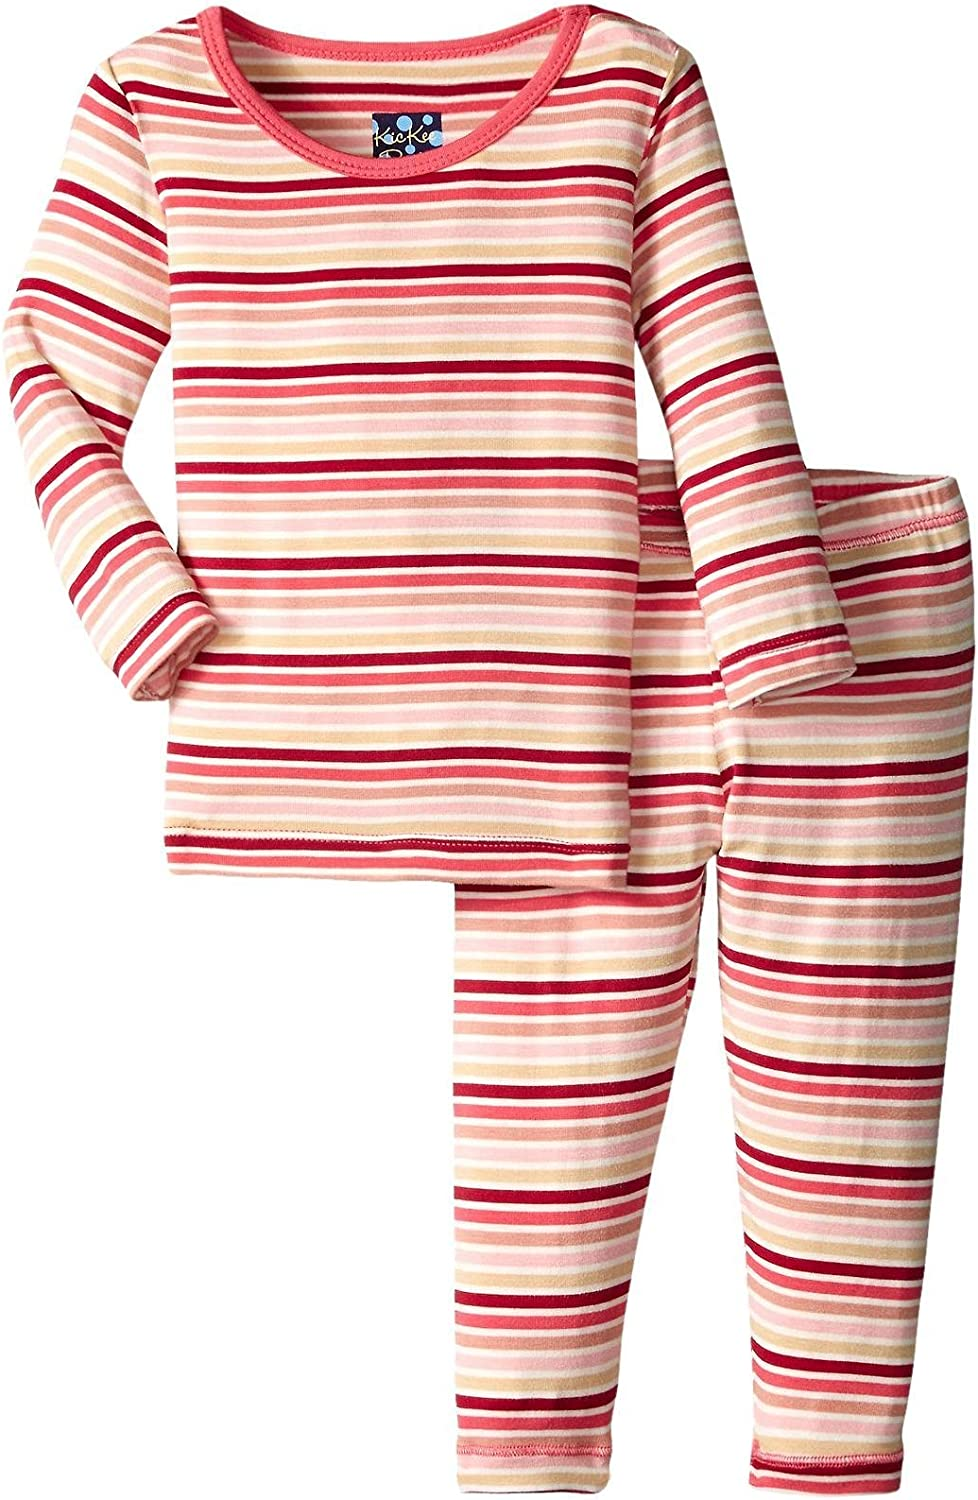 Kickee Pants Baby Girls Print Long Sleeve Pajama Set Prd-kplp108f16d1-gfor